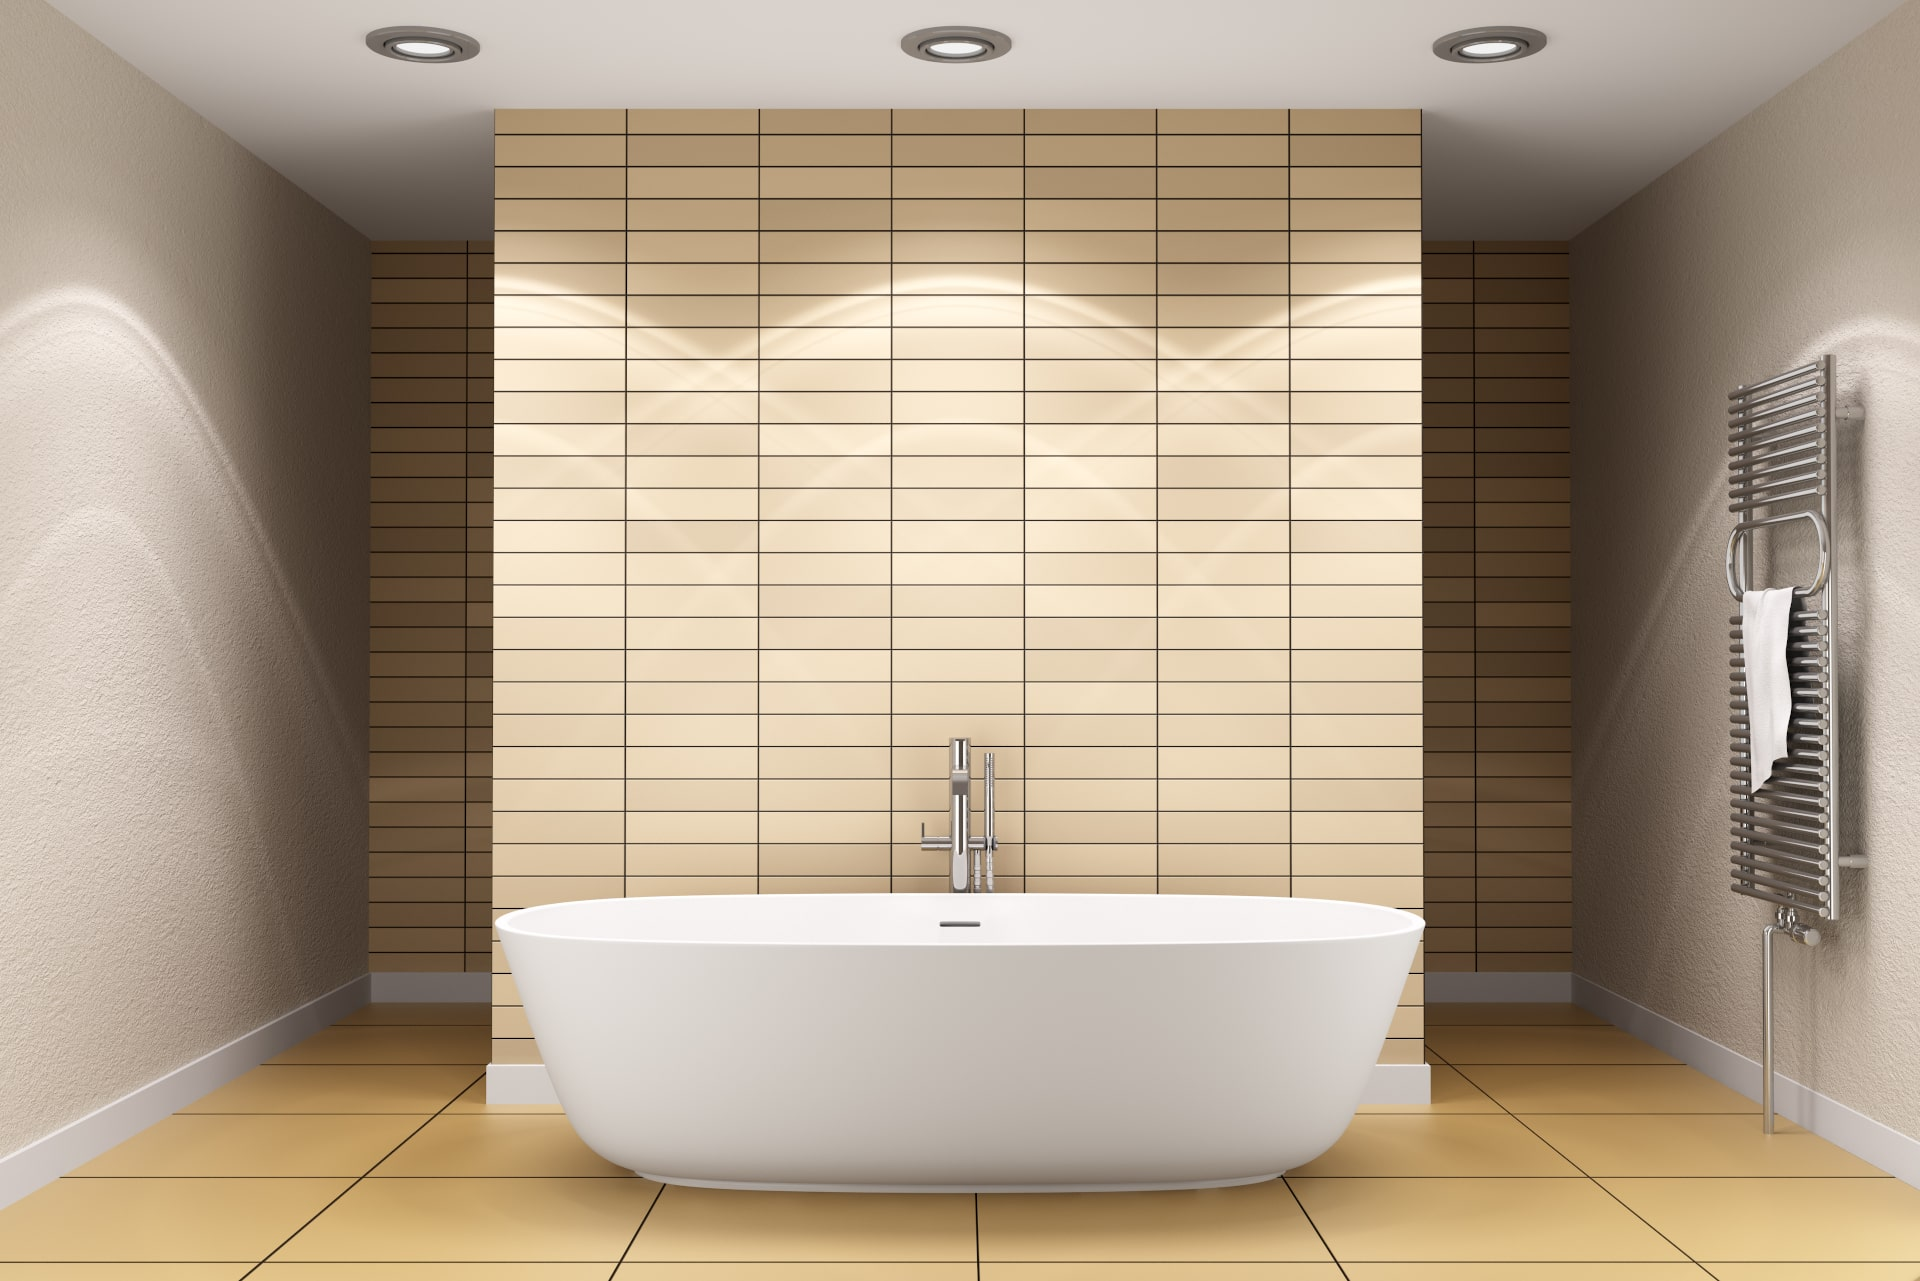 modern-bathroom-with-beige-tiles-on-wall-and-floor-PP3XENH